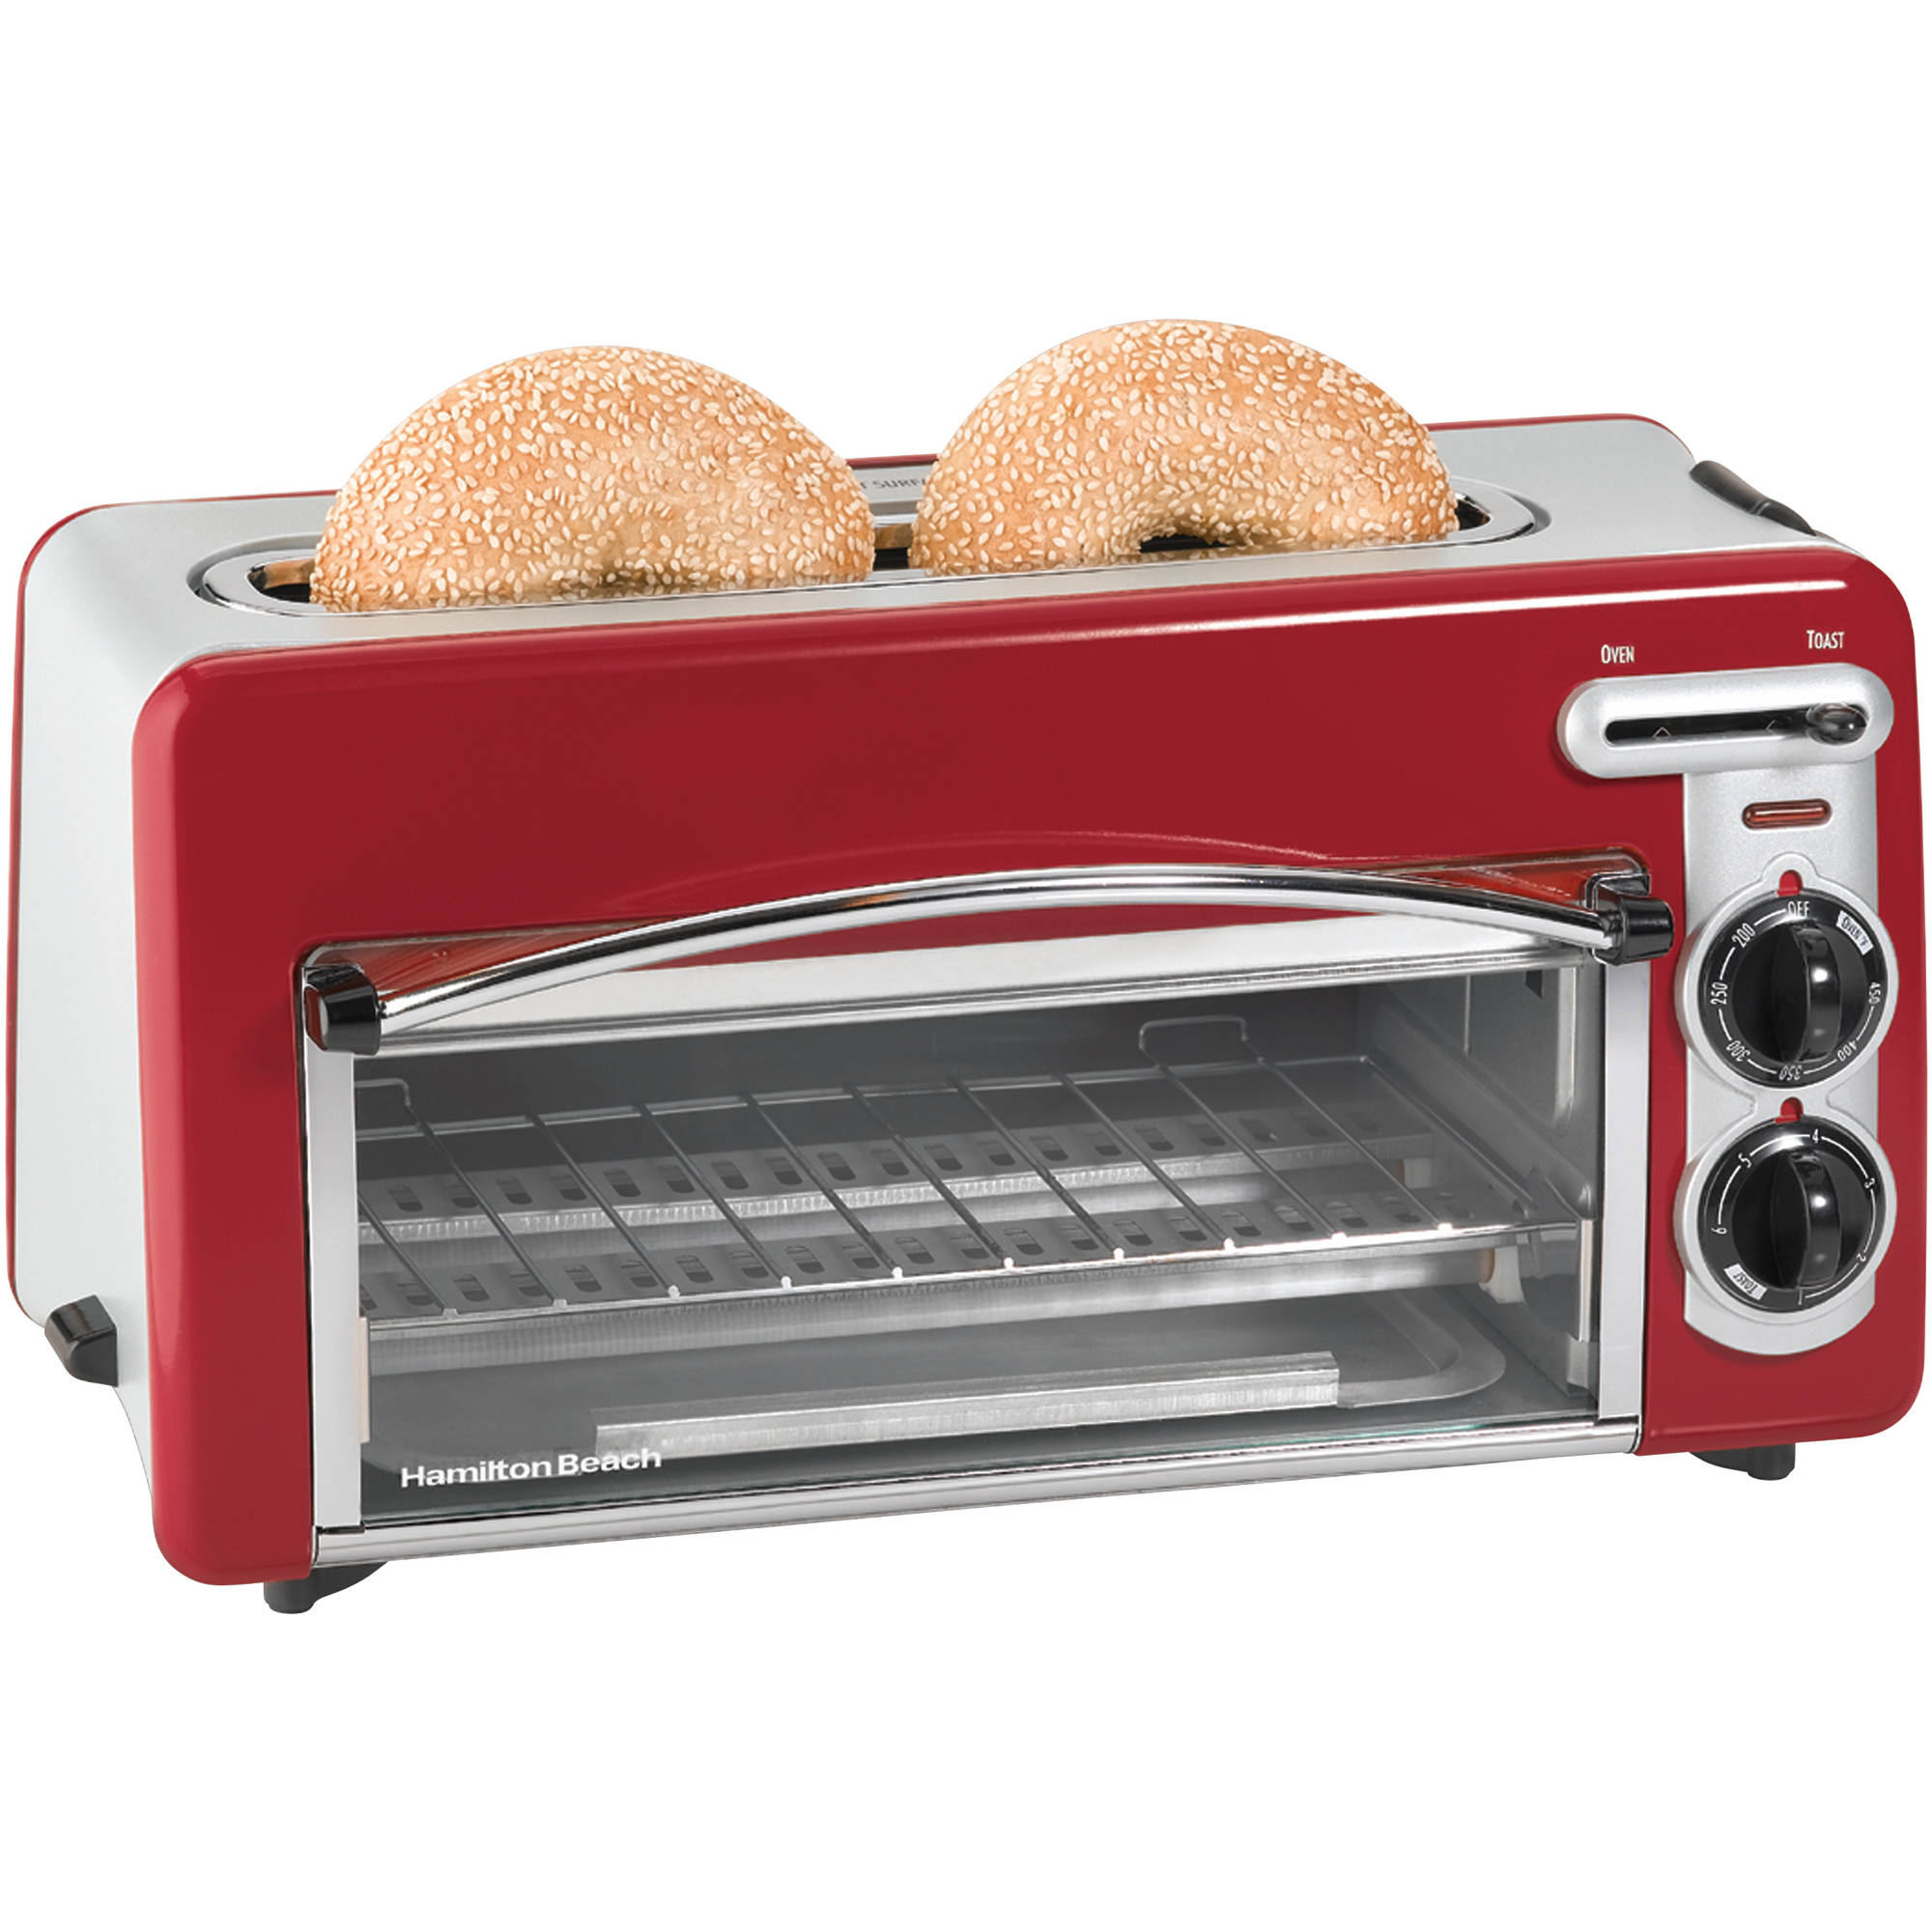 Hamilton Beach Toastation 2-in-1 2 Slice Toaster & Oven In Red | Model# 22703